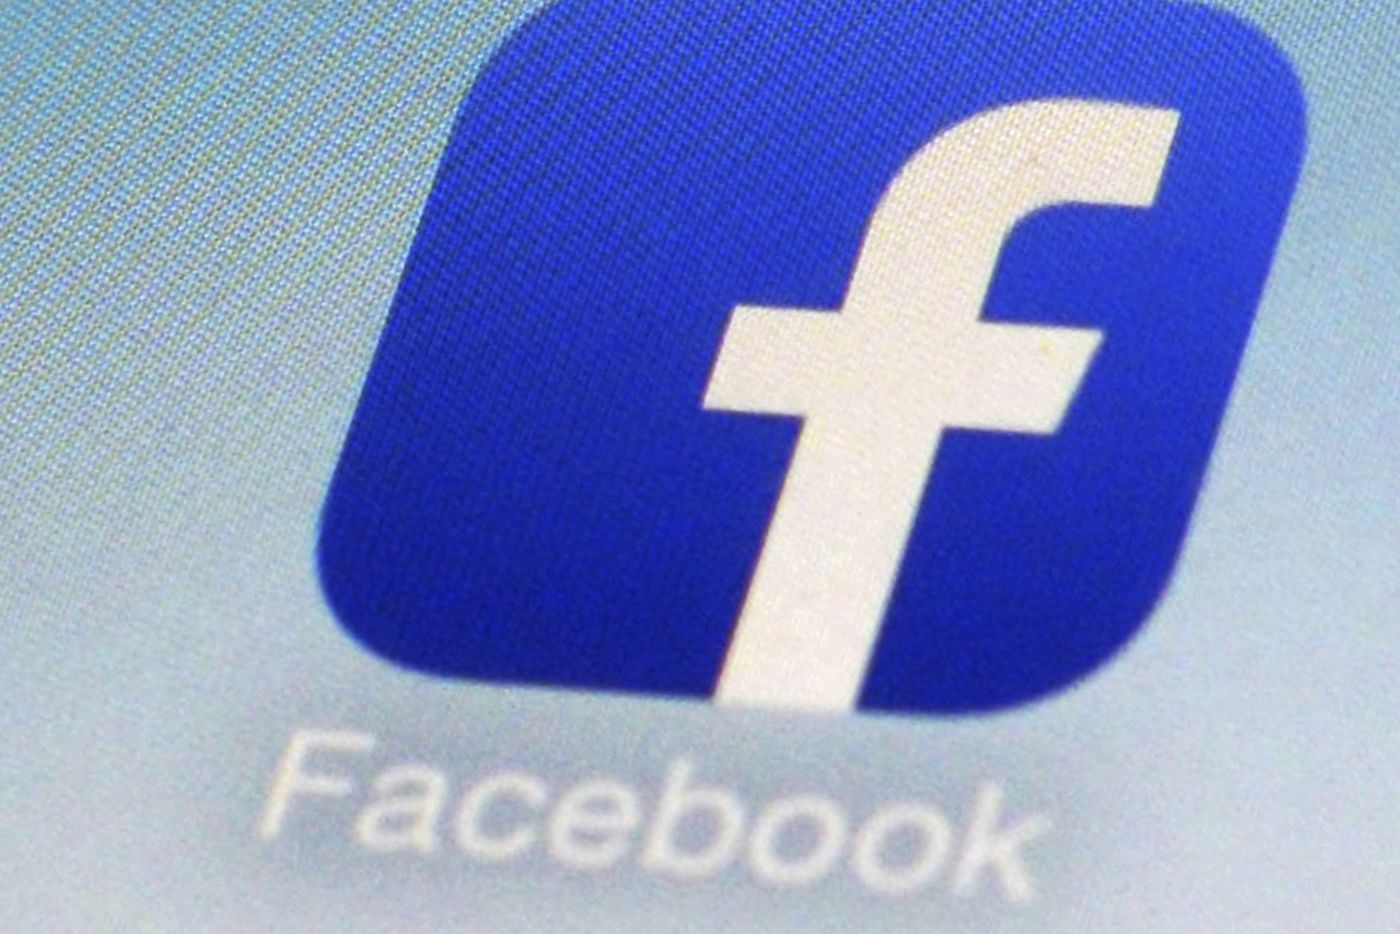 Hackers accessed data of almost 30mn Facebook users